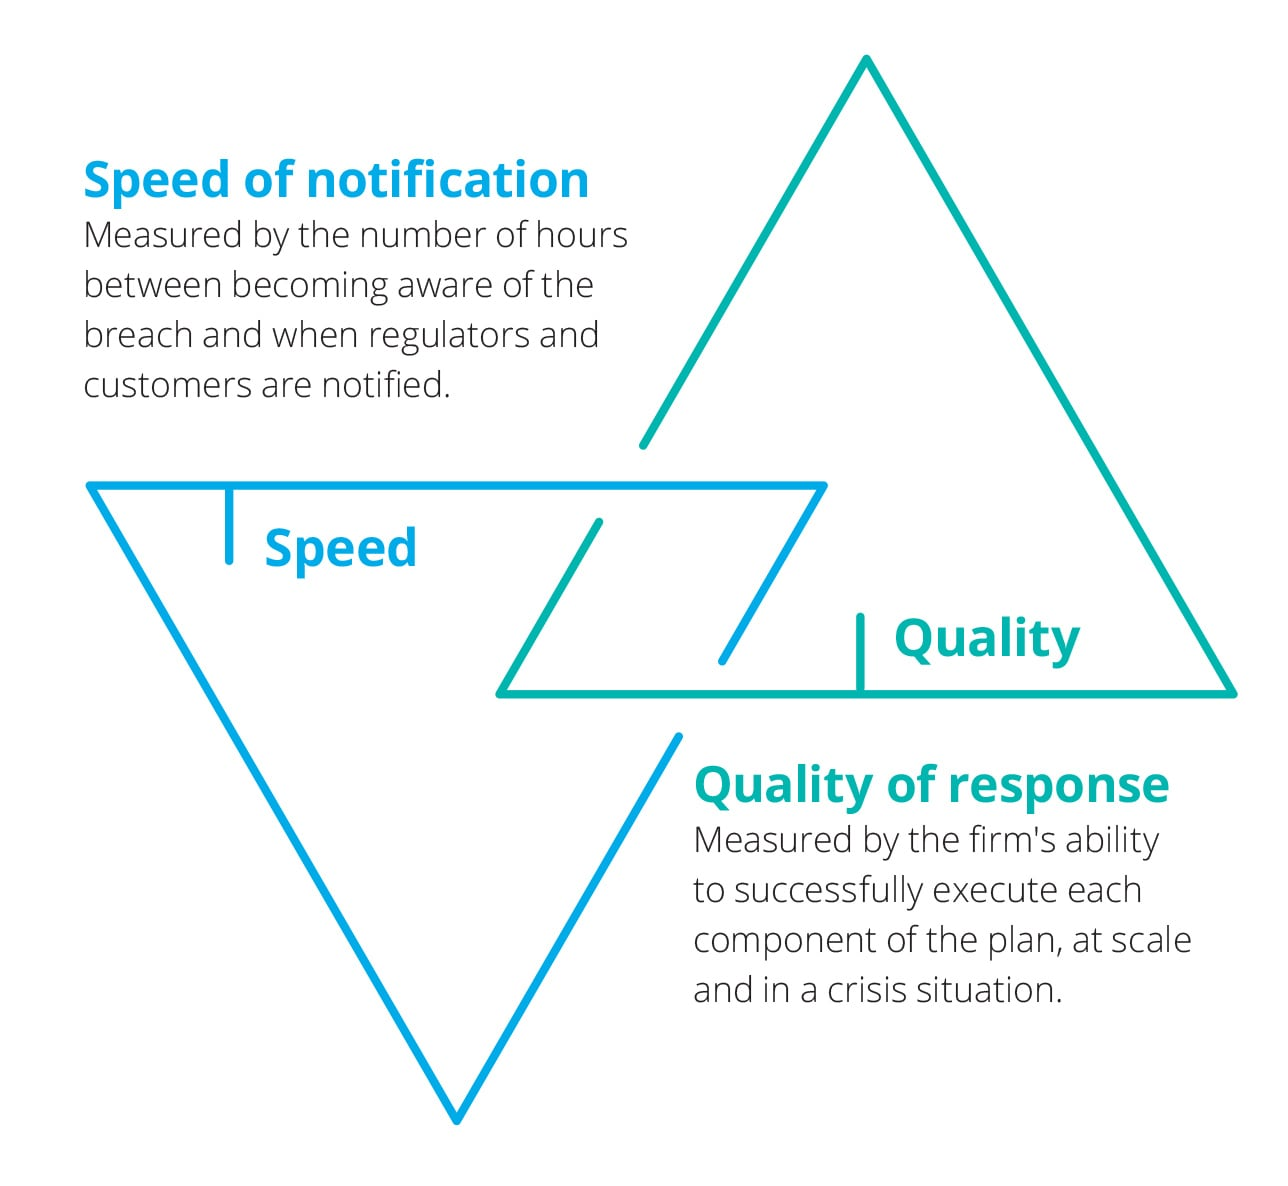 deloitte-uk-speed-and-quality.jpg